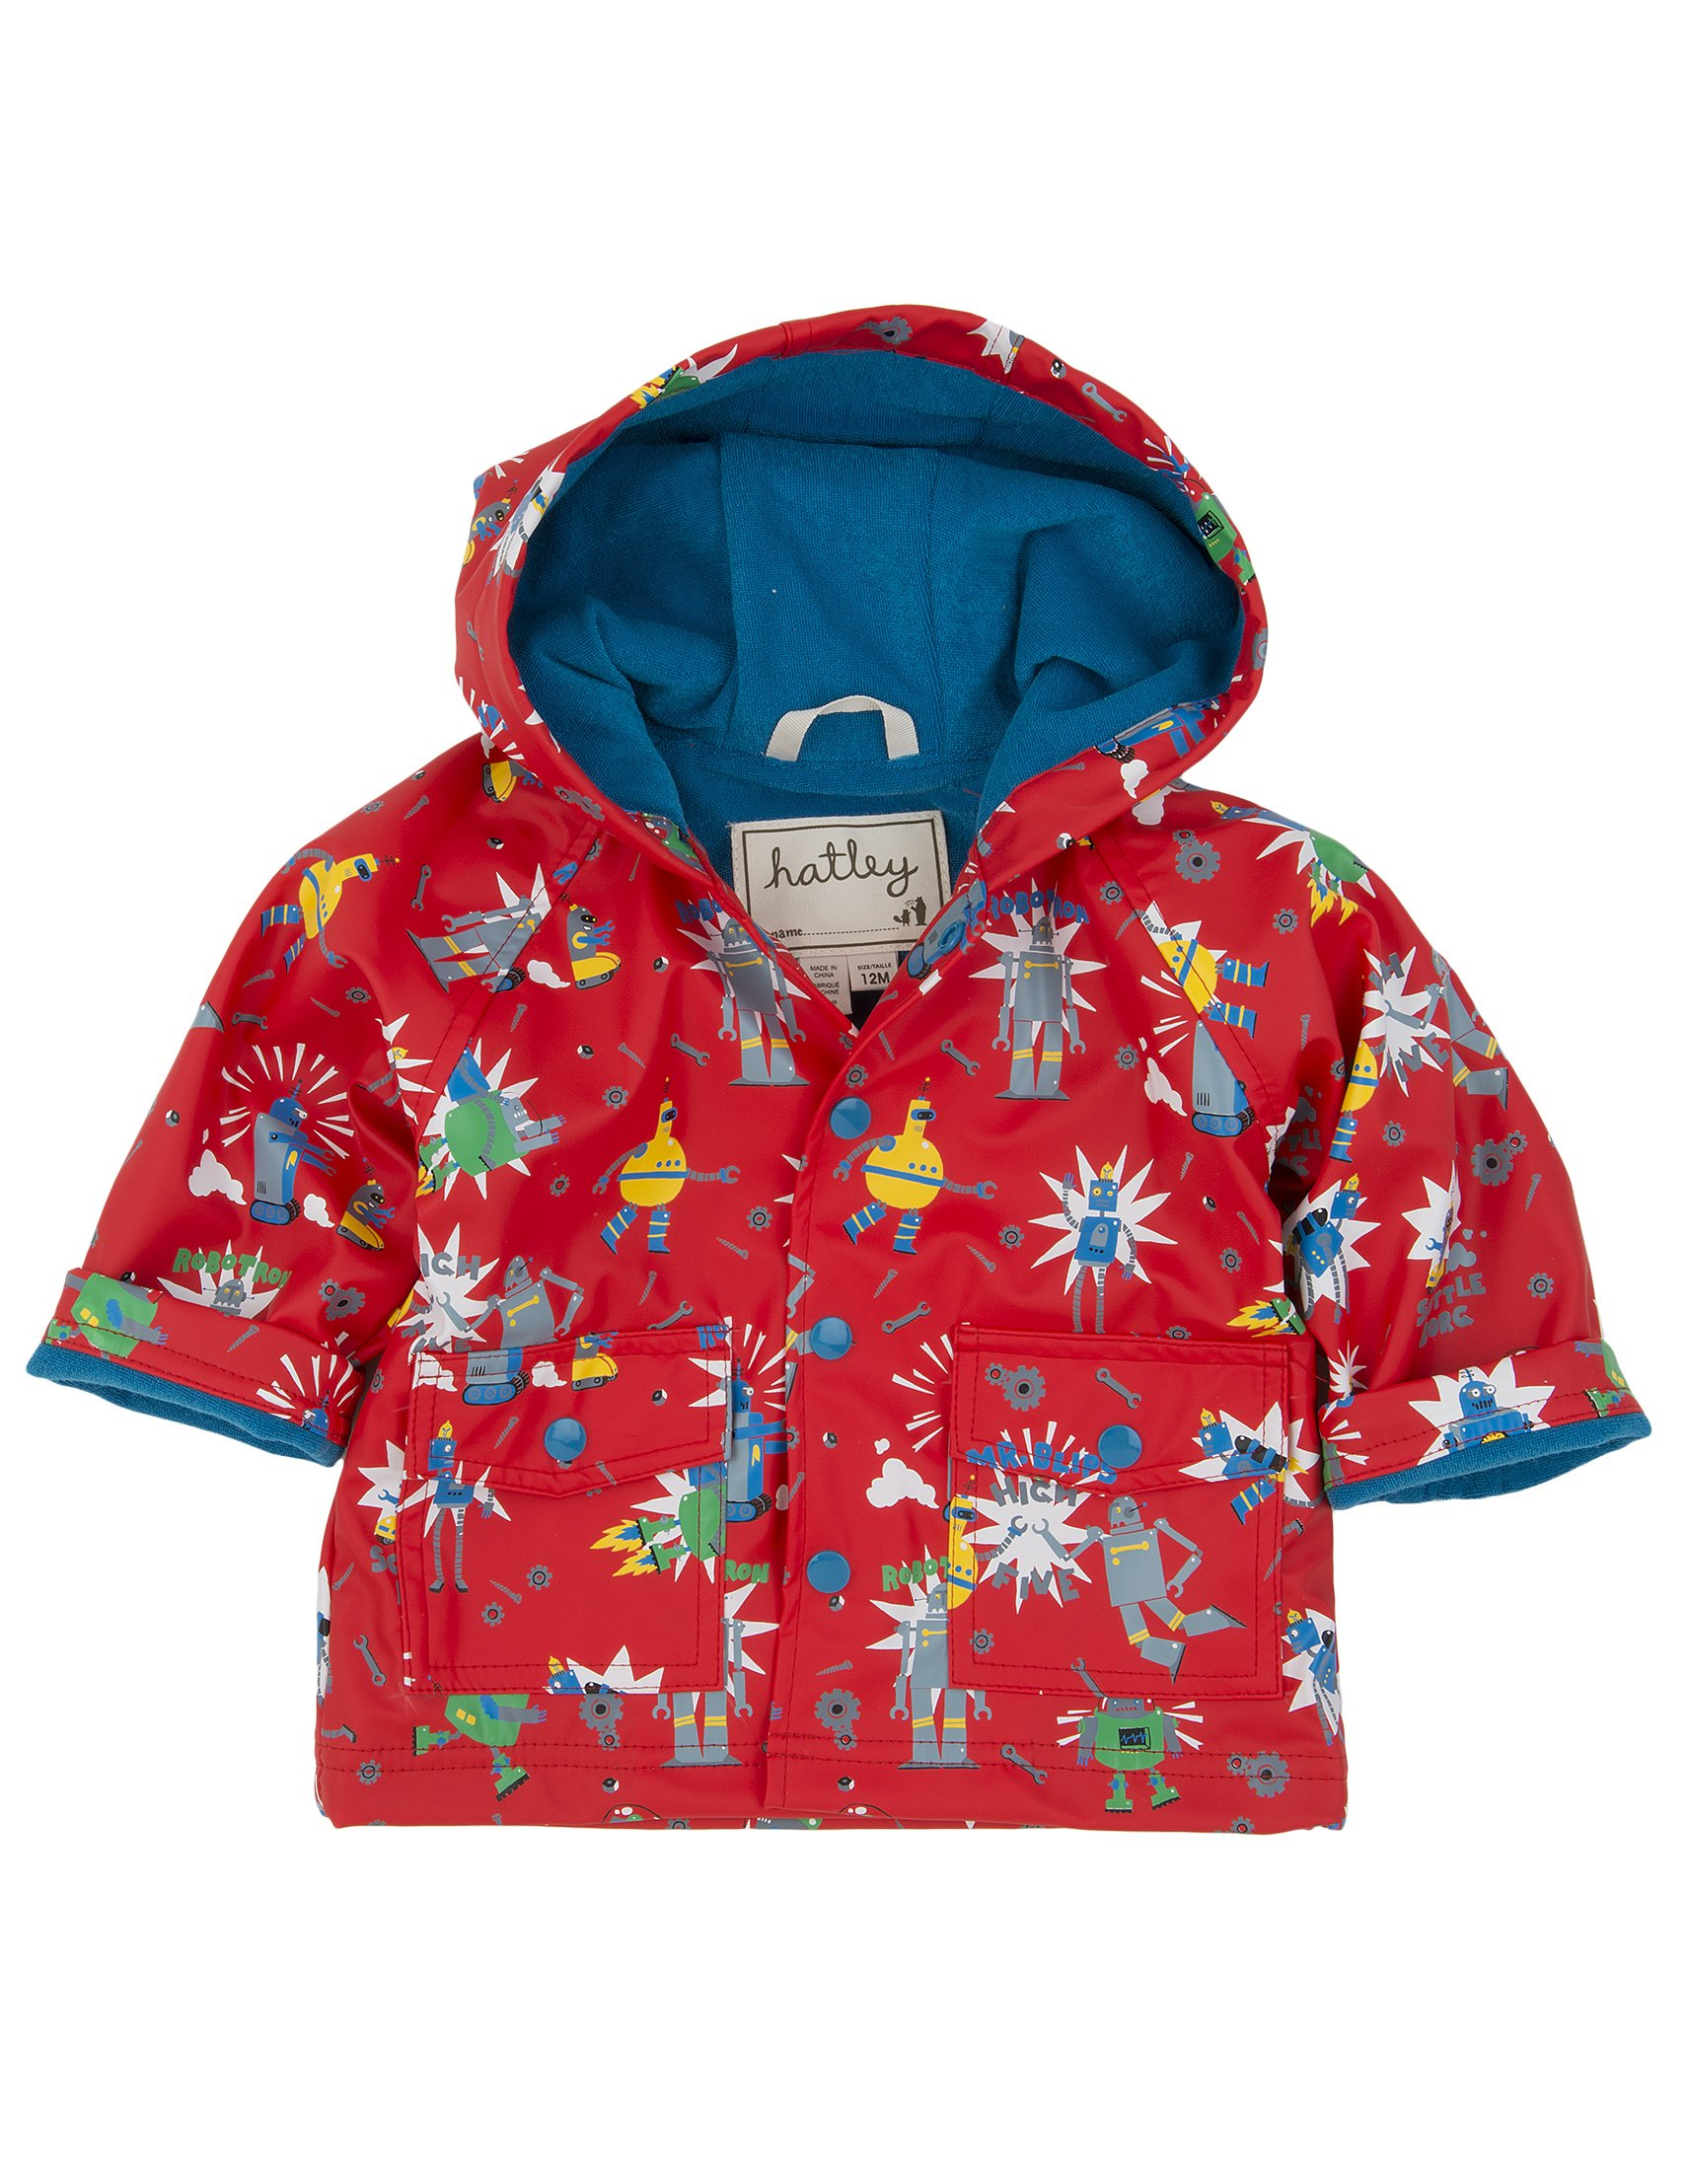 Hatley Kids Baby Boy's Robots Raincoat (Infant) Orange Outerwear 12-18 Months by Hatley